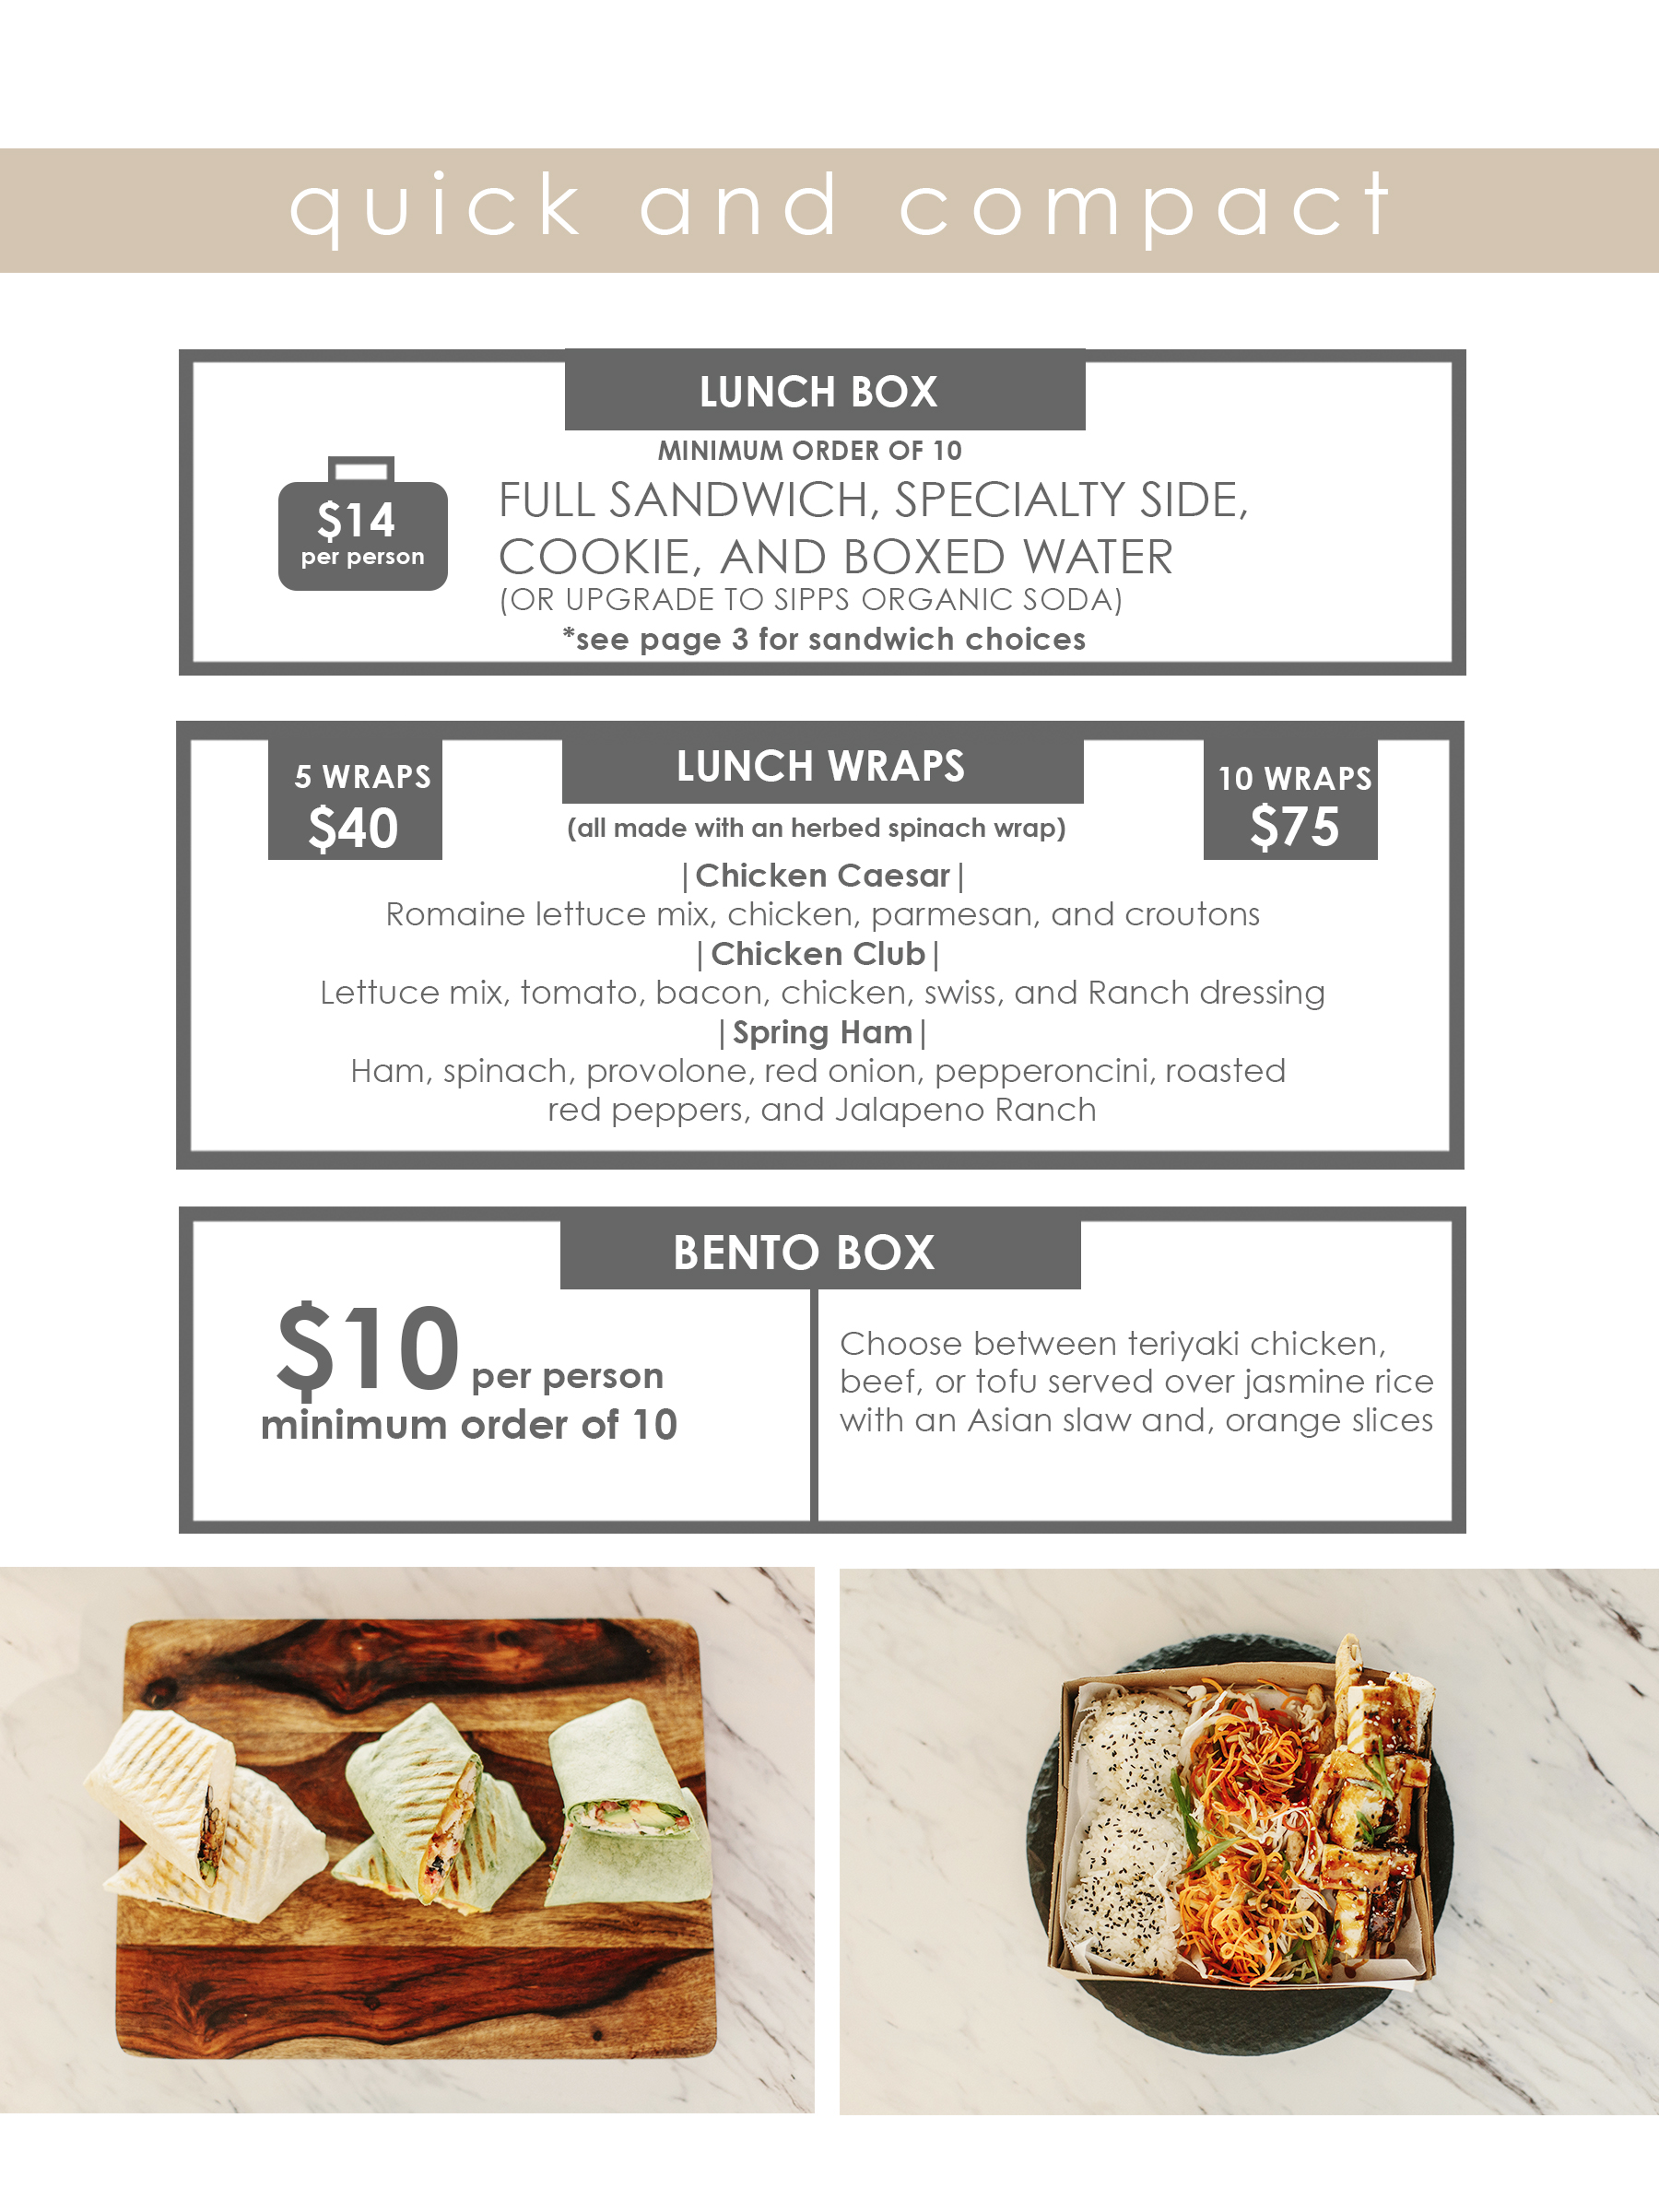 LUNCH BOXES AND WRAPS